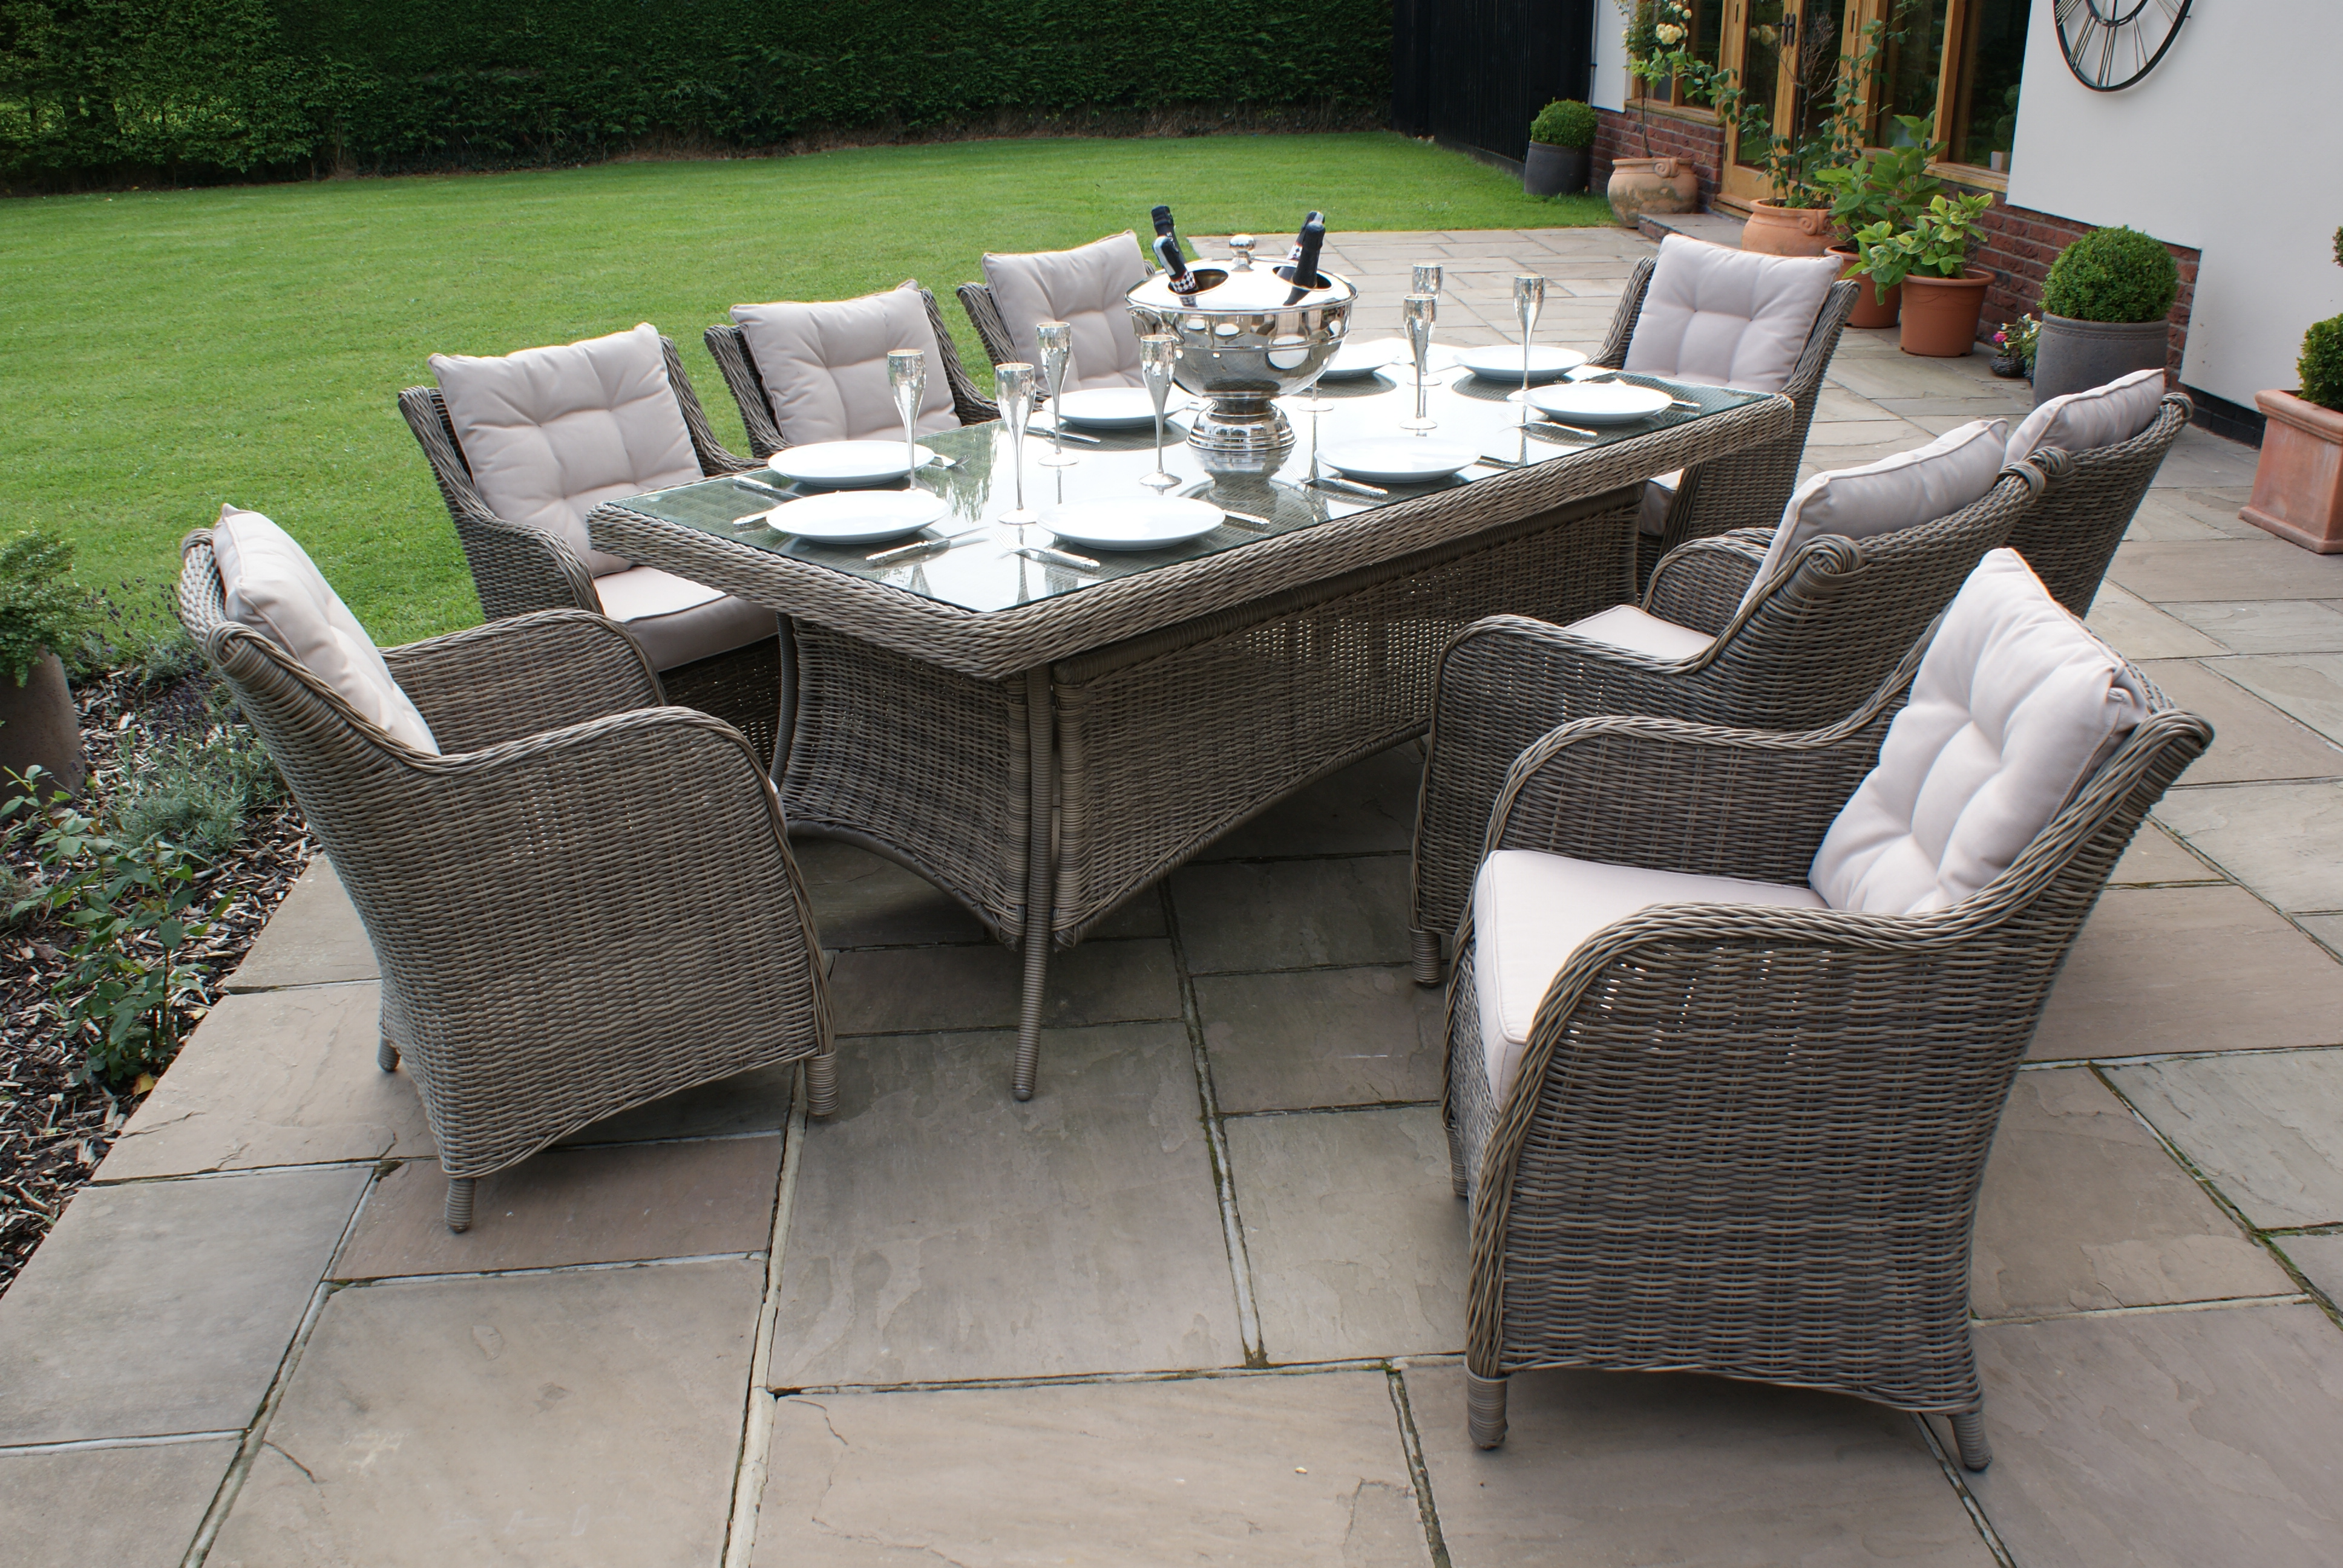 Dining room set for the garden Winchester Rectangular dining room set with 8 seats and square chairs Crownhill in the garden PGNPWDV